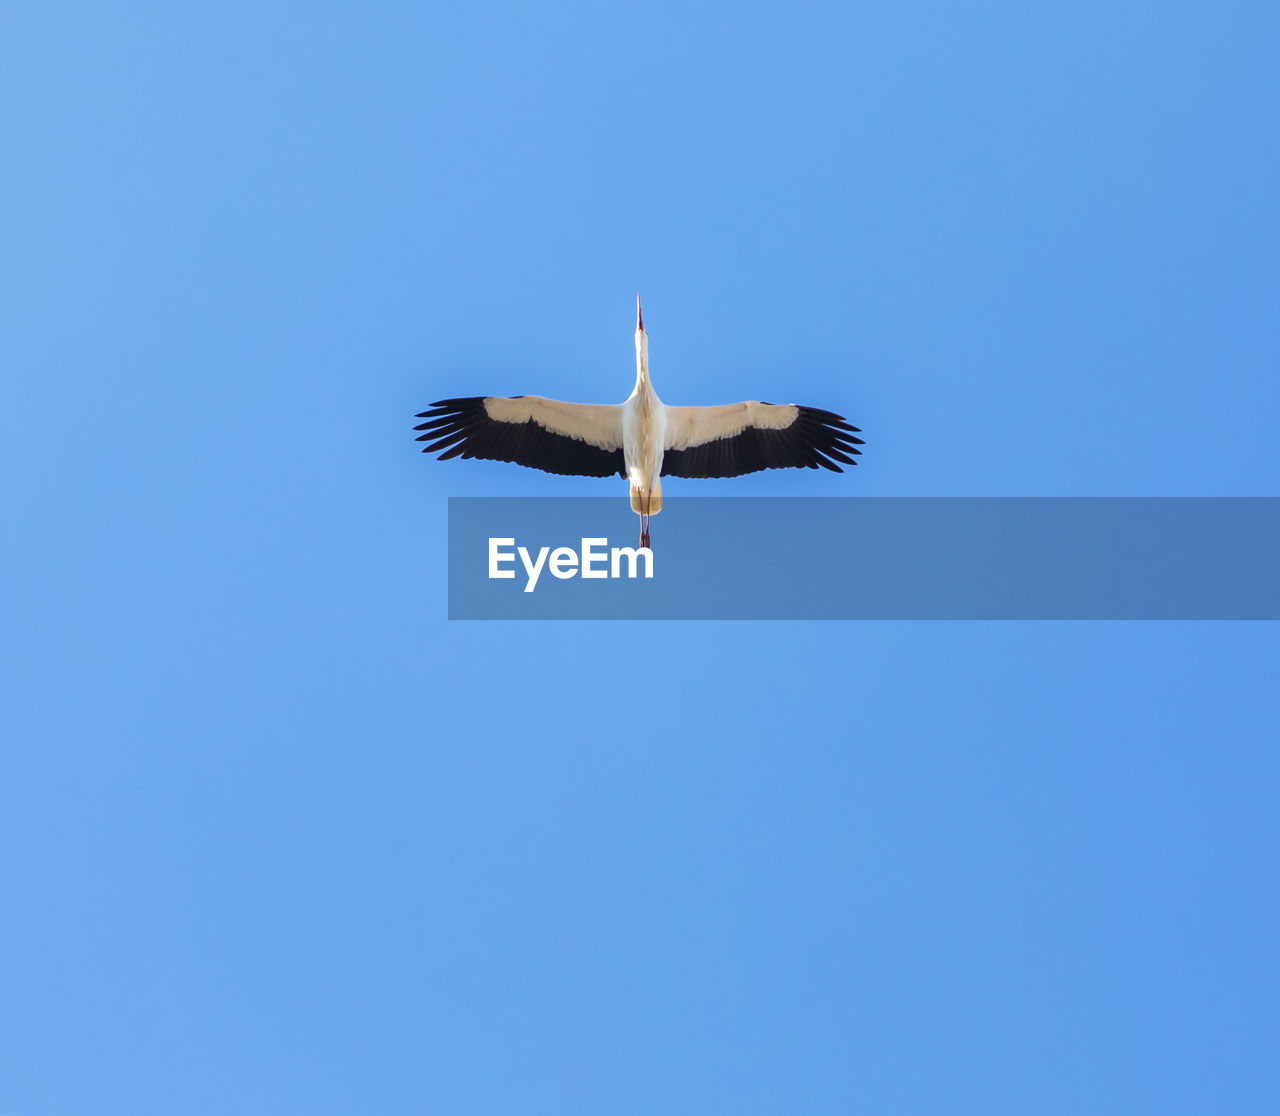 flying, animal wildlife, animals in the wild, bird, vertebrate, animal themes, animal, sky, spread wings, low angle view, one animal, copy space, blue, clear sky, mid-air, no people, nature, day, motion, outdoors, seagull, stork